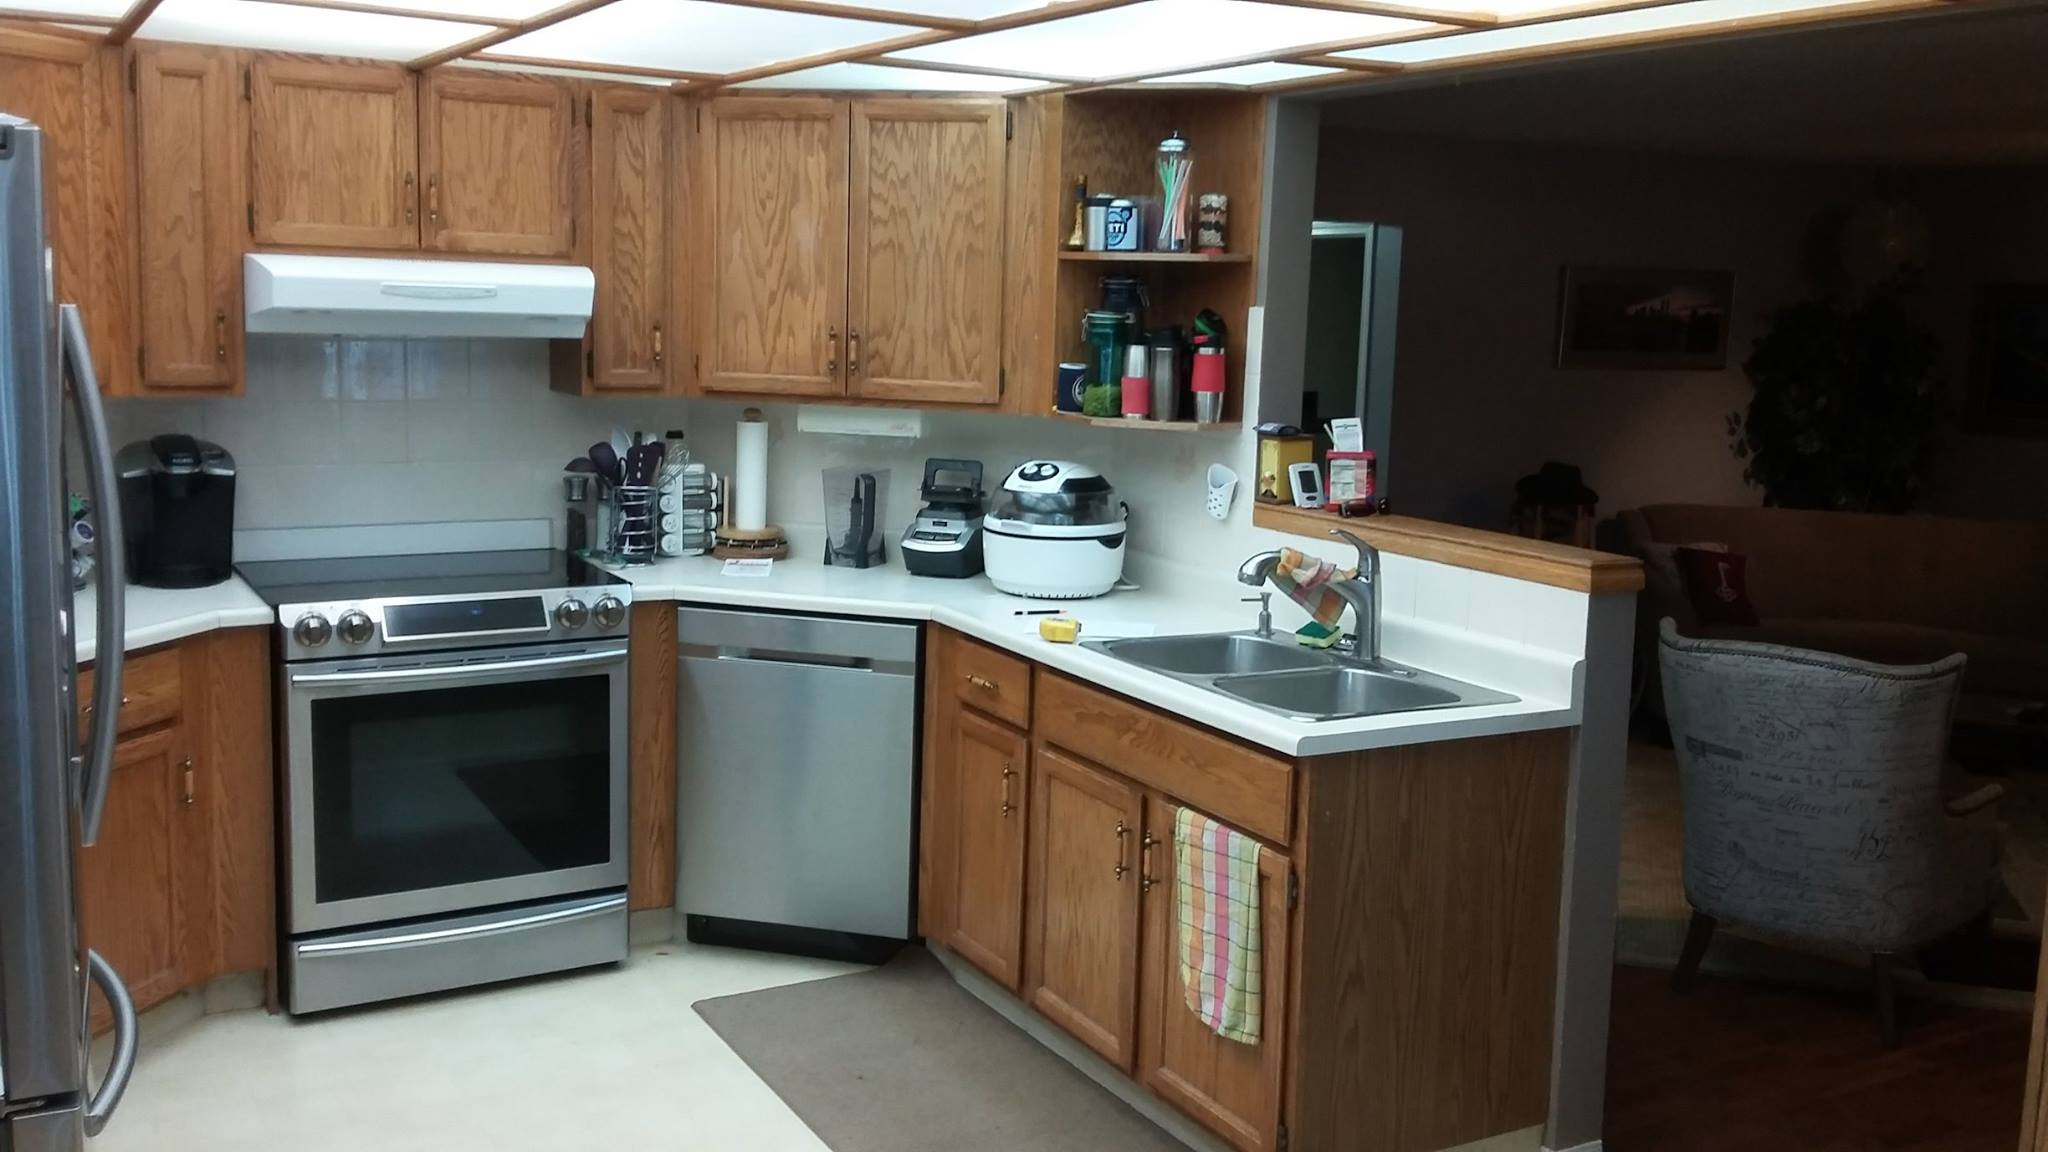 Cut off from the rest of the house, this kitchen doesn't allow the cook to spend time with guests during a family event. As well, that sunshine ceiling with flourescent lighting was an eyesore that had to go.